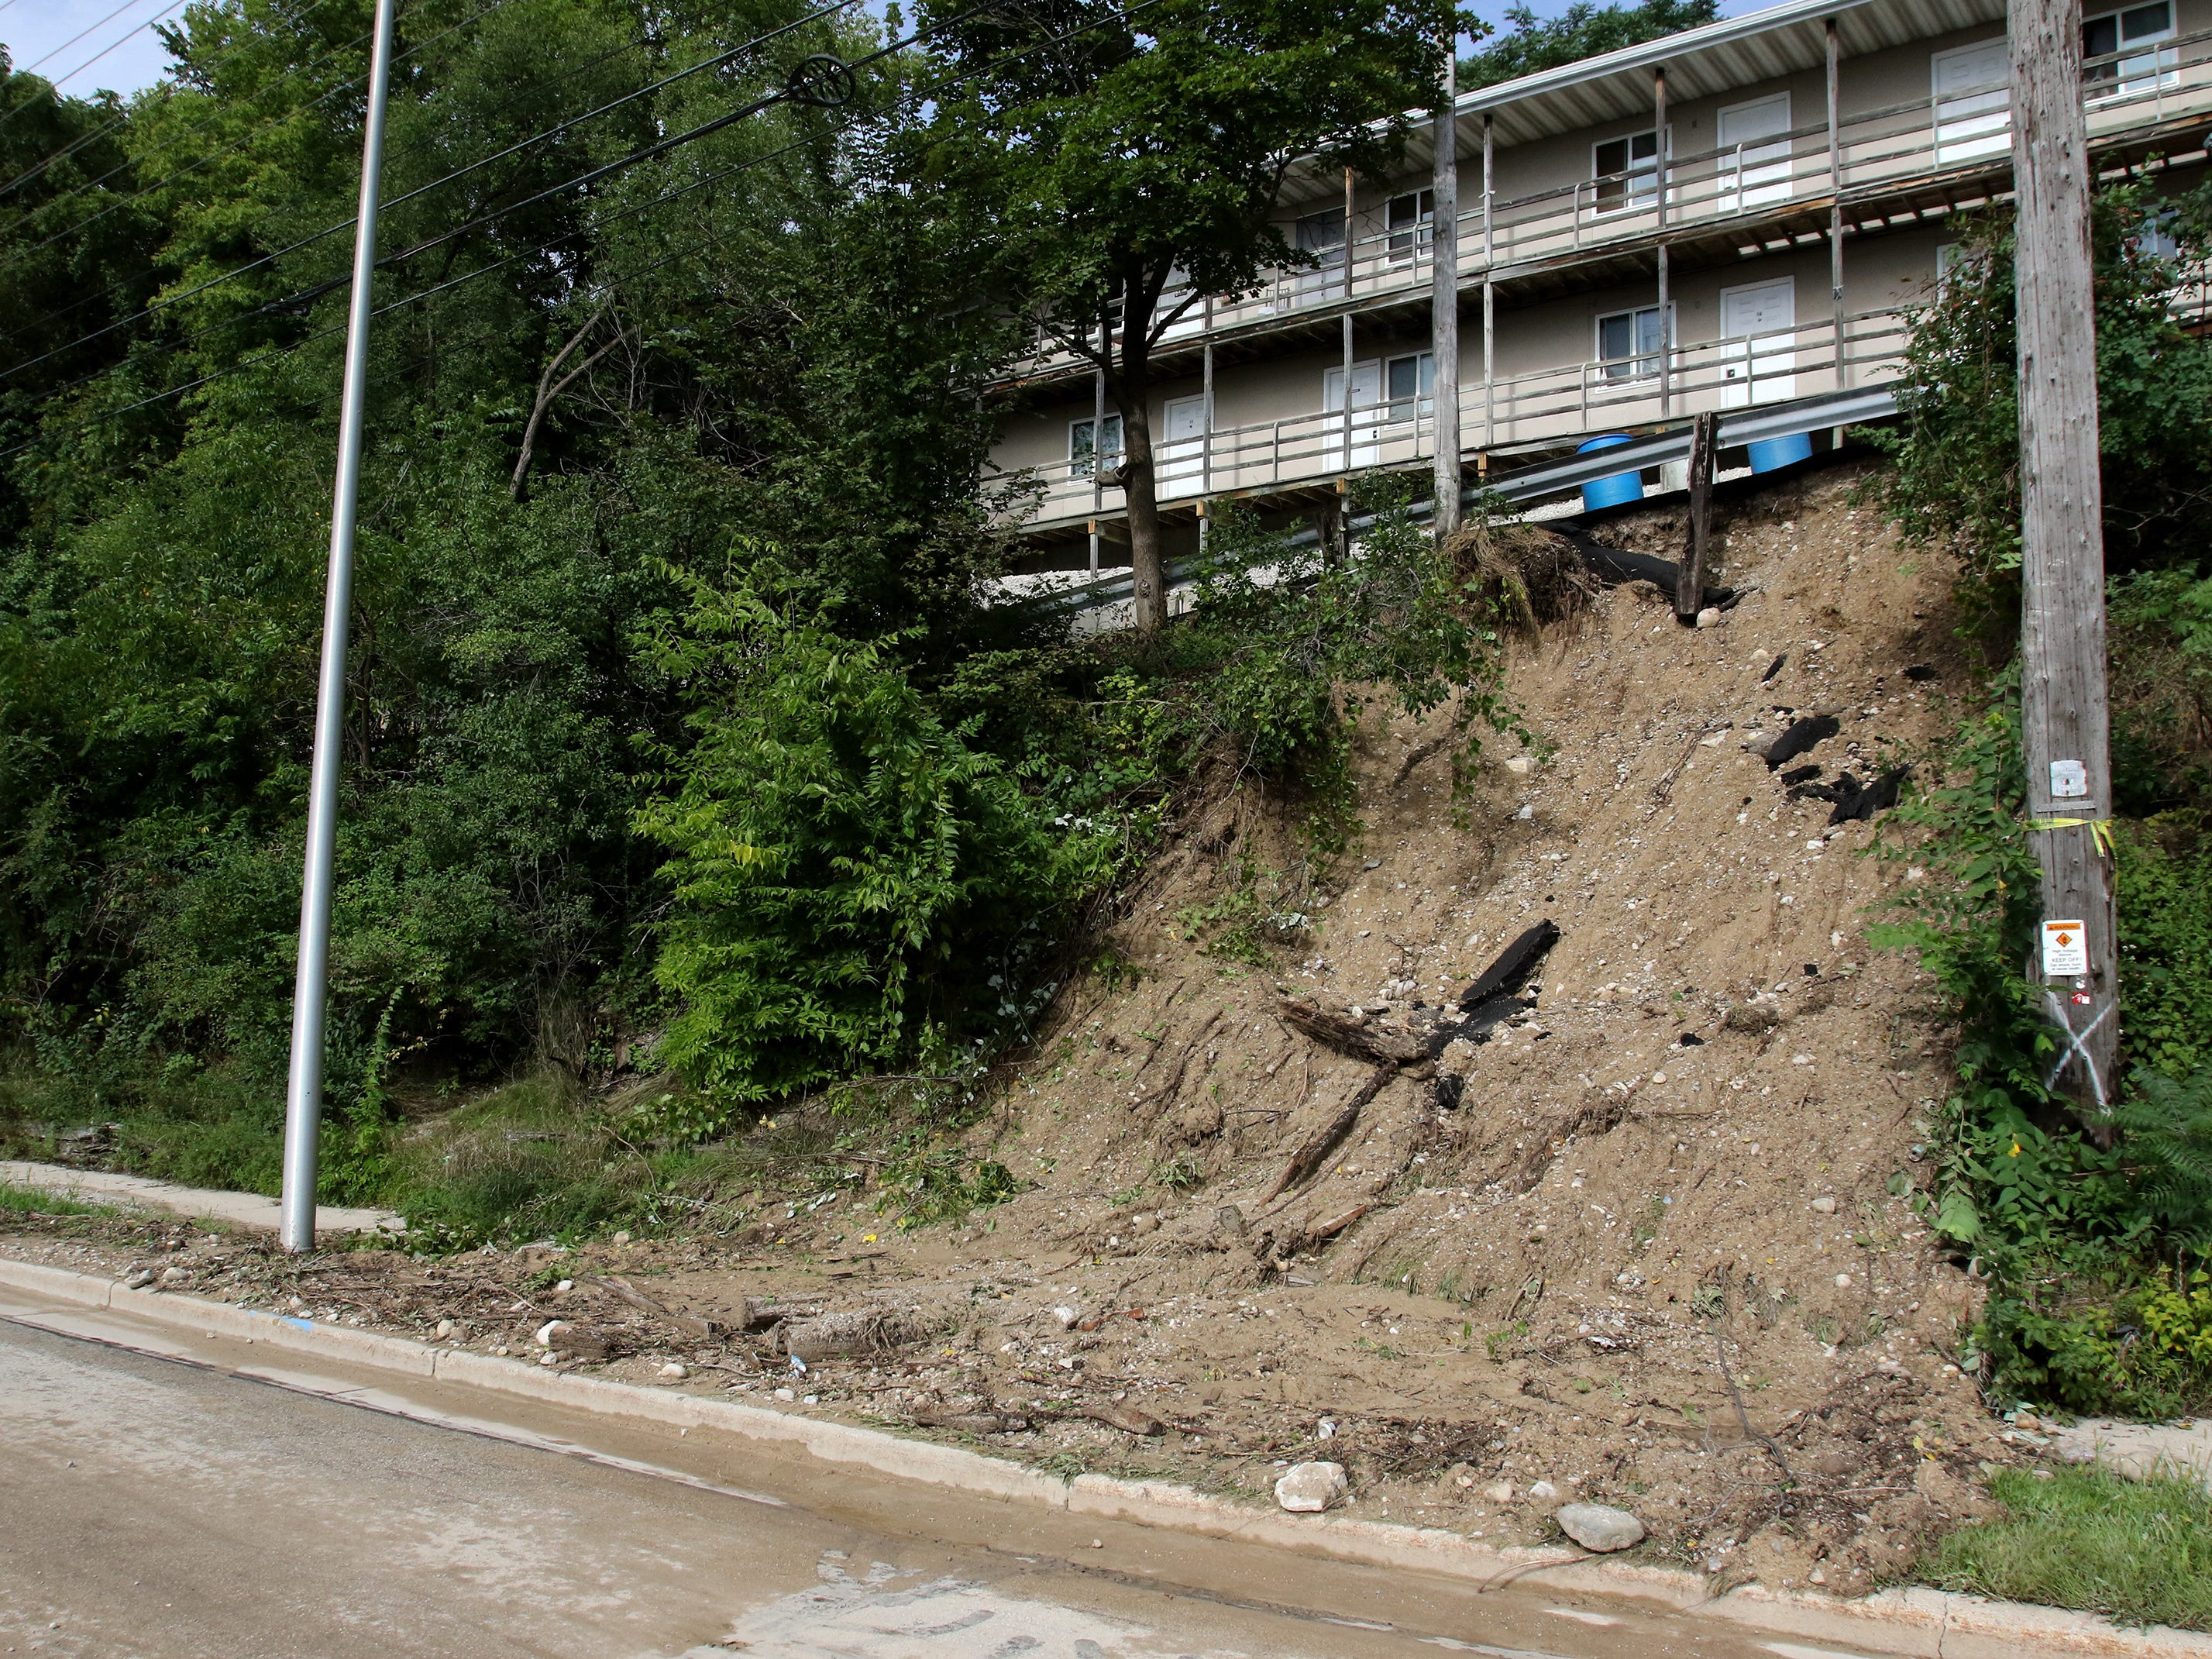 A guard rail standard base to an apartment parking lot is exposed when mud and debris from a steep hill flowed across Pewaukee Road where it merges with East North Street on Sept. 6 forcing the closure of Pewaukee Road between East North Road and Buena Vista Avenue.